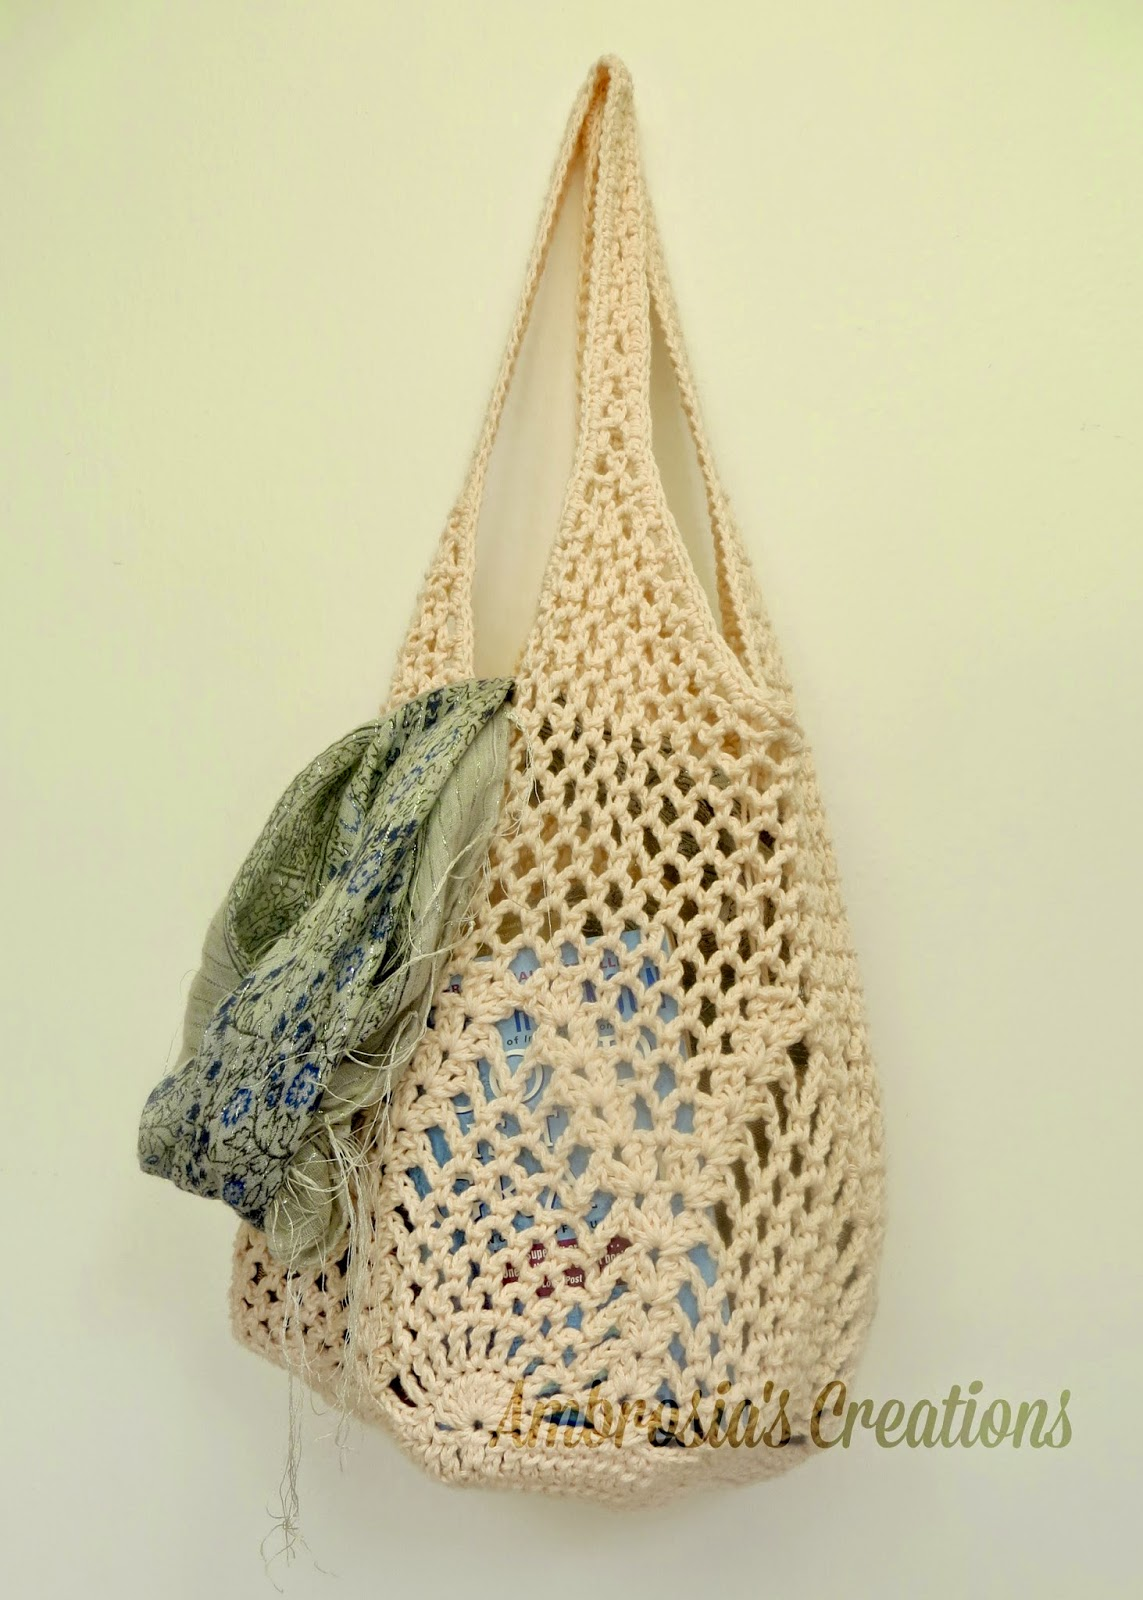 Crochet Bag Chart : ... : Pattern:: Pineapple Crochet Market Bag - Chart & Translation